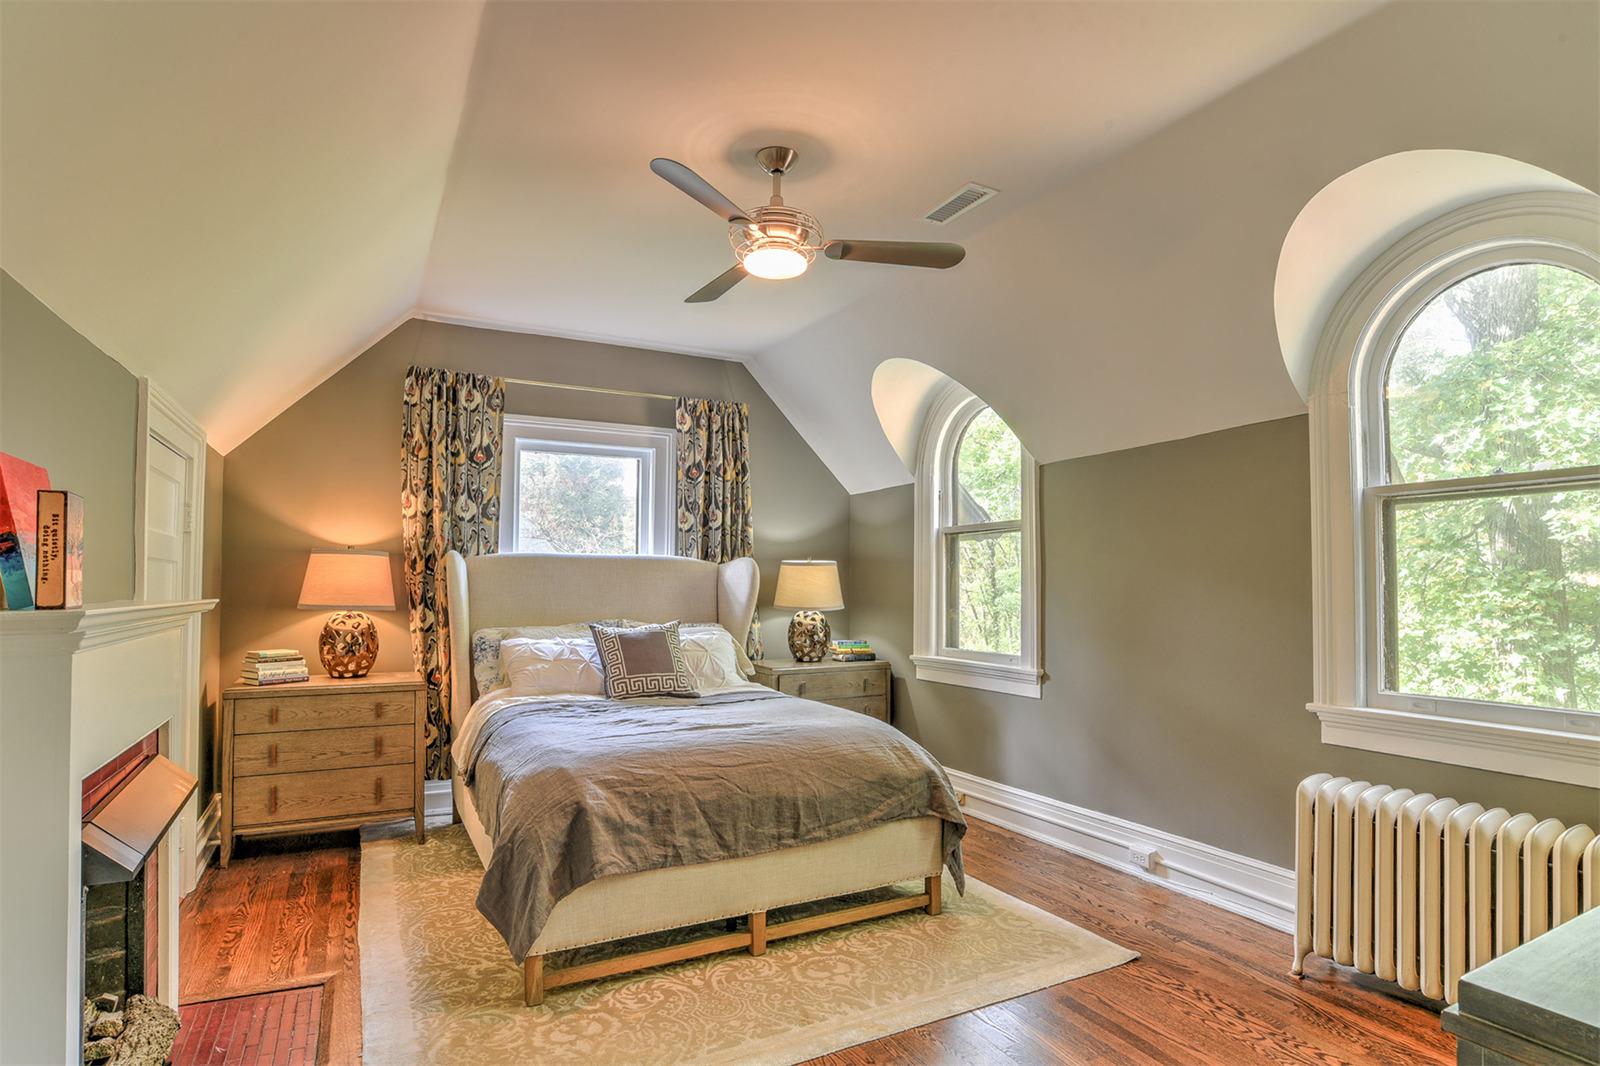 buncombe gay singles Free property report for 603 marietta st, asheville, nc 28803 - single family residence 3 beds, 1 baths, 1,210 sq ft get home facts, home value, real estate property report and neighborhood information.